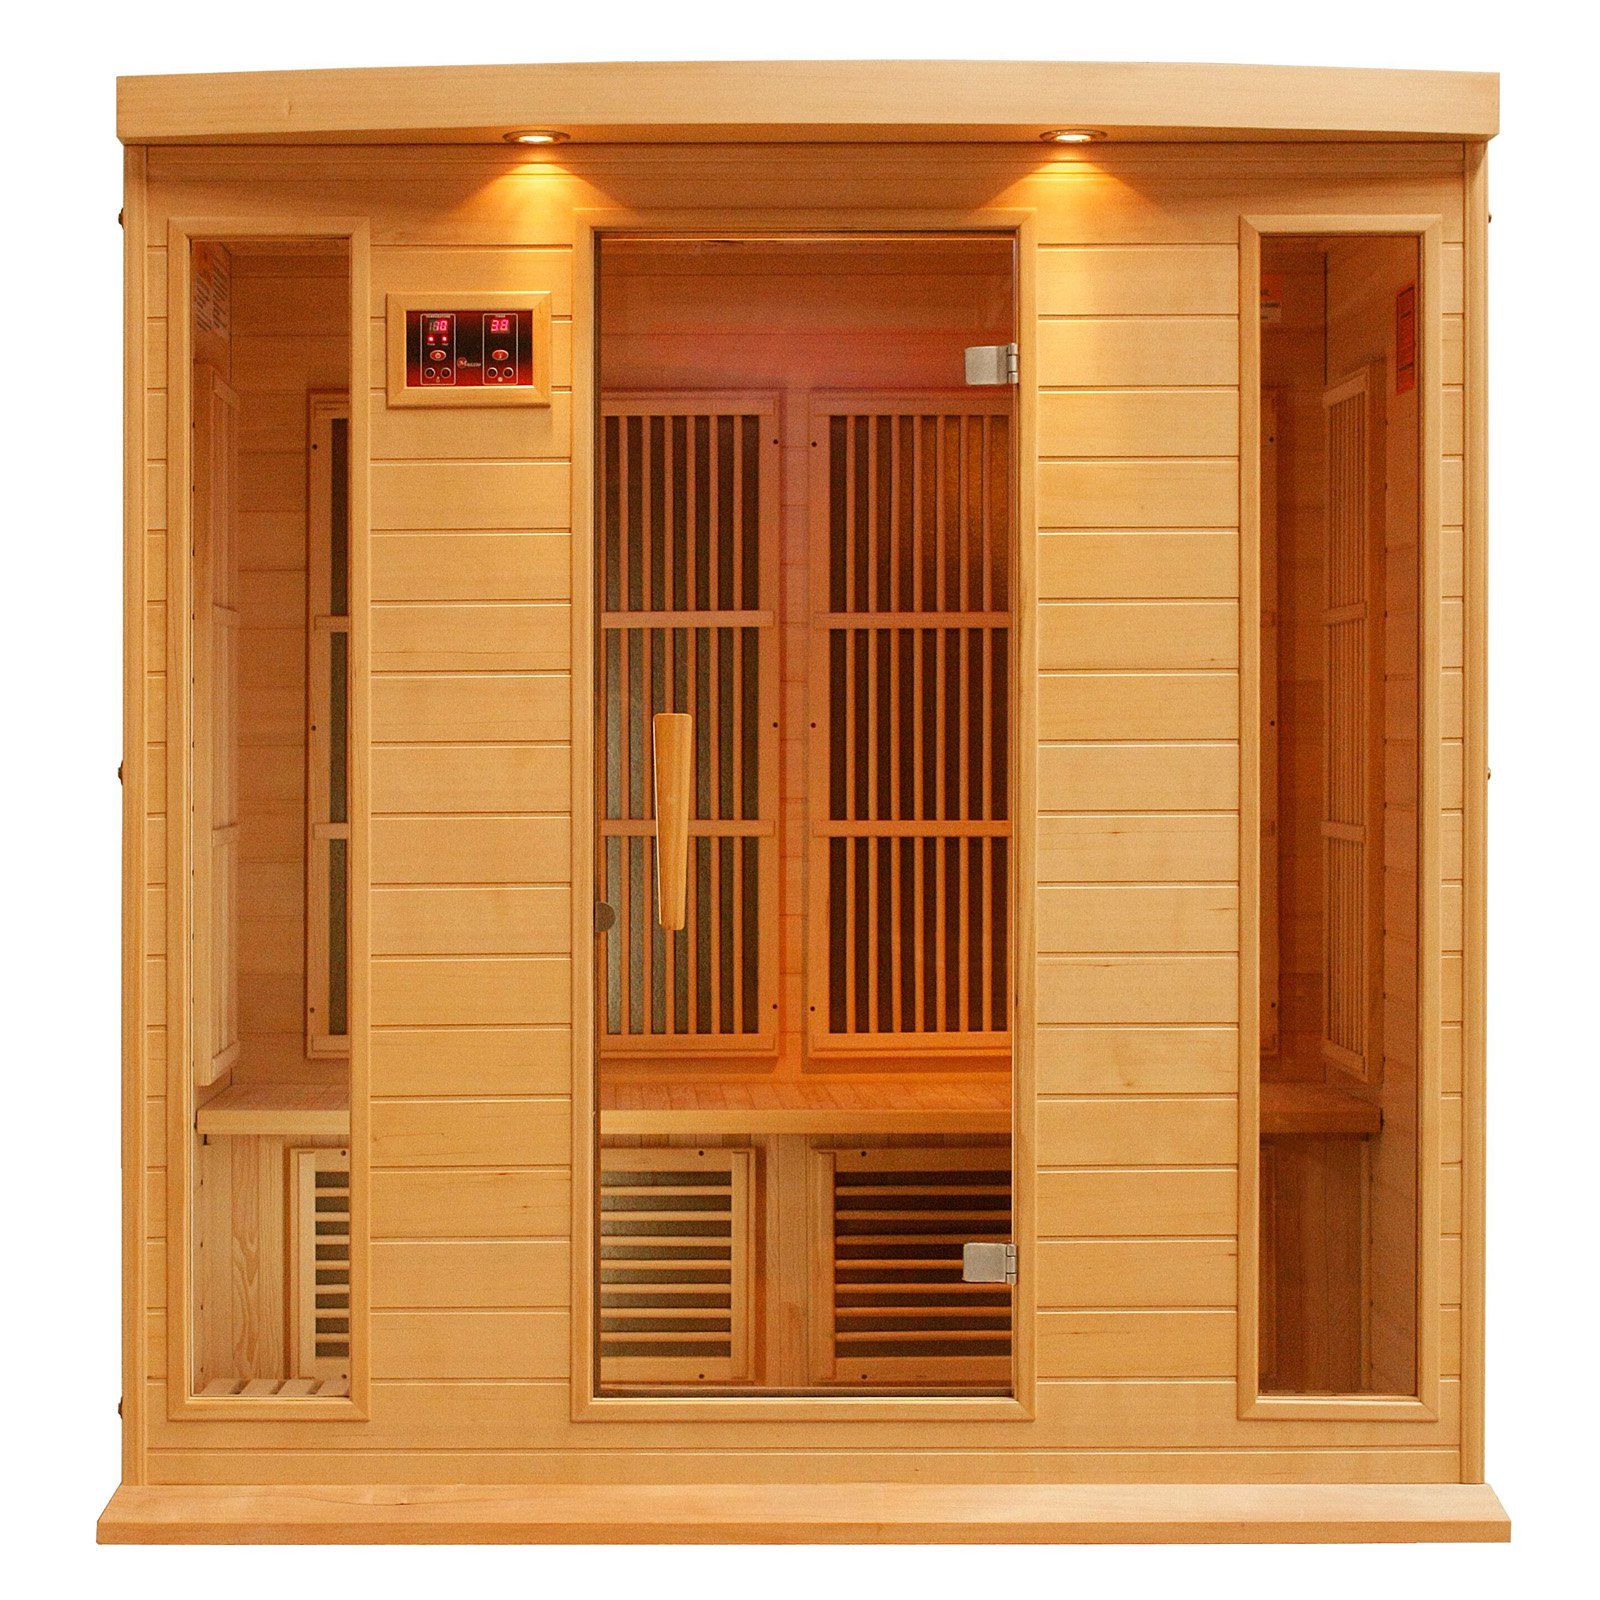 Maxxus Sauna 4 Person Carbon Sauna by Golden Designs